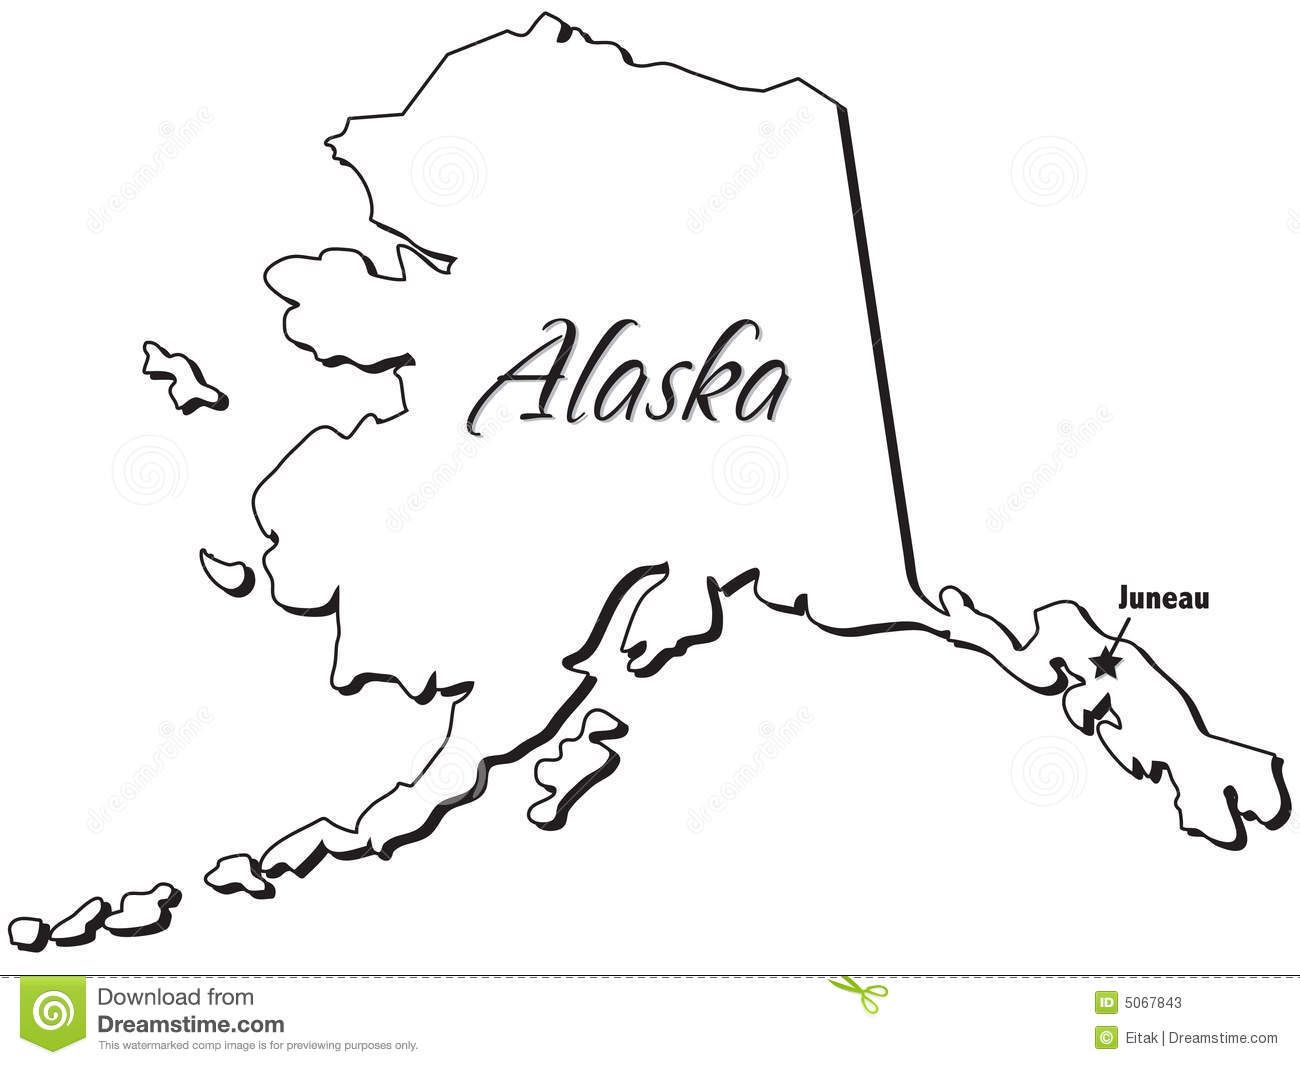 Free black & white clipart alaskian seal clip art transparent stock alaska illustration outline state juneau isolation map ... | Map ... clip art transparent stock